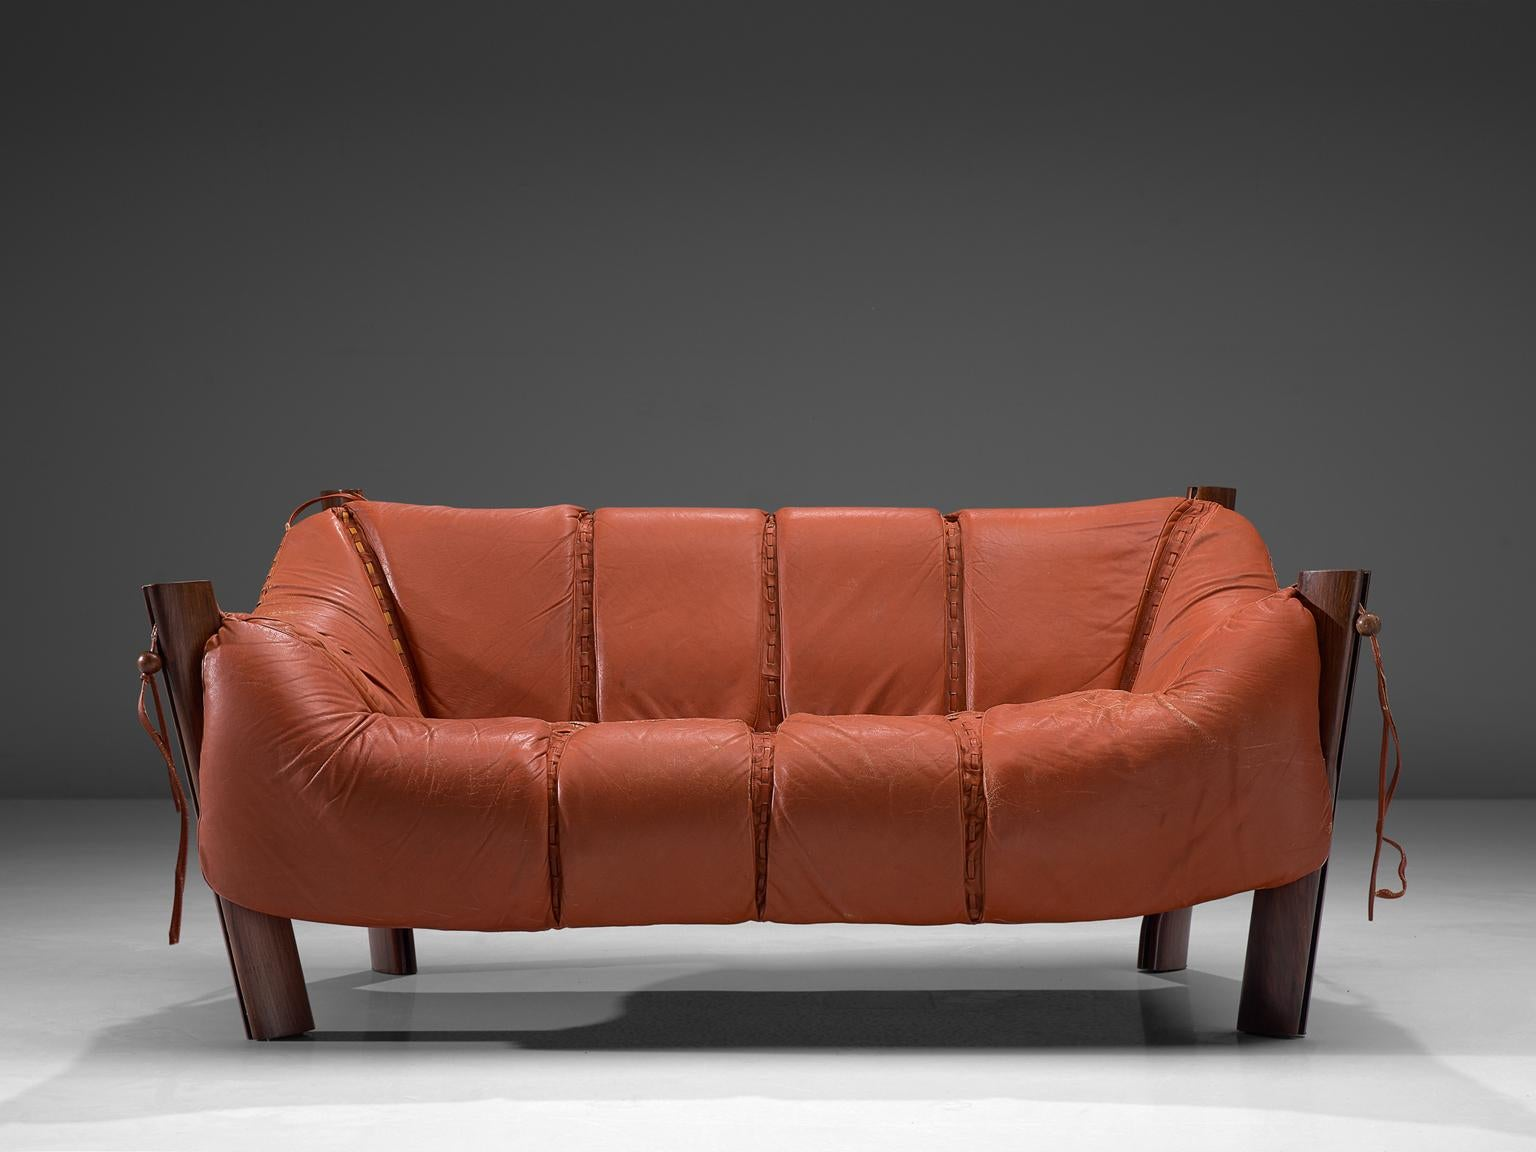 Percival Lafer Two Seat Sofa In Rosewood And Red Leather